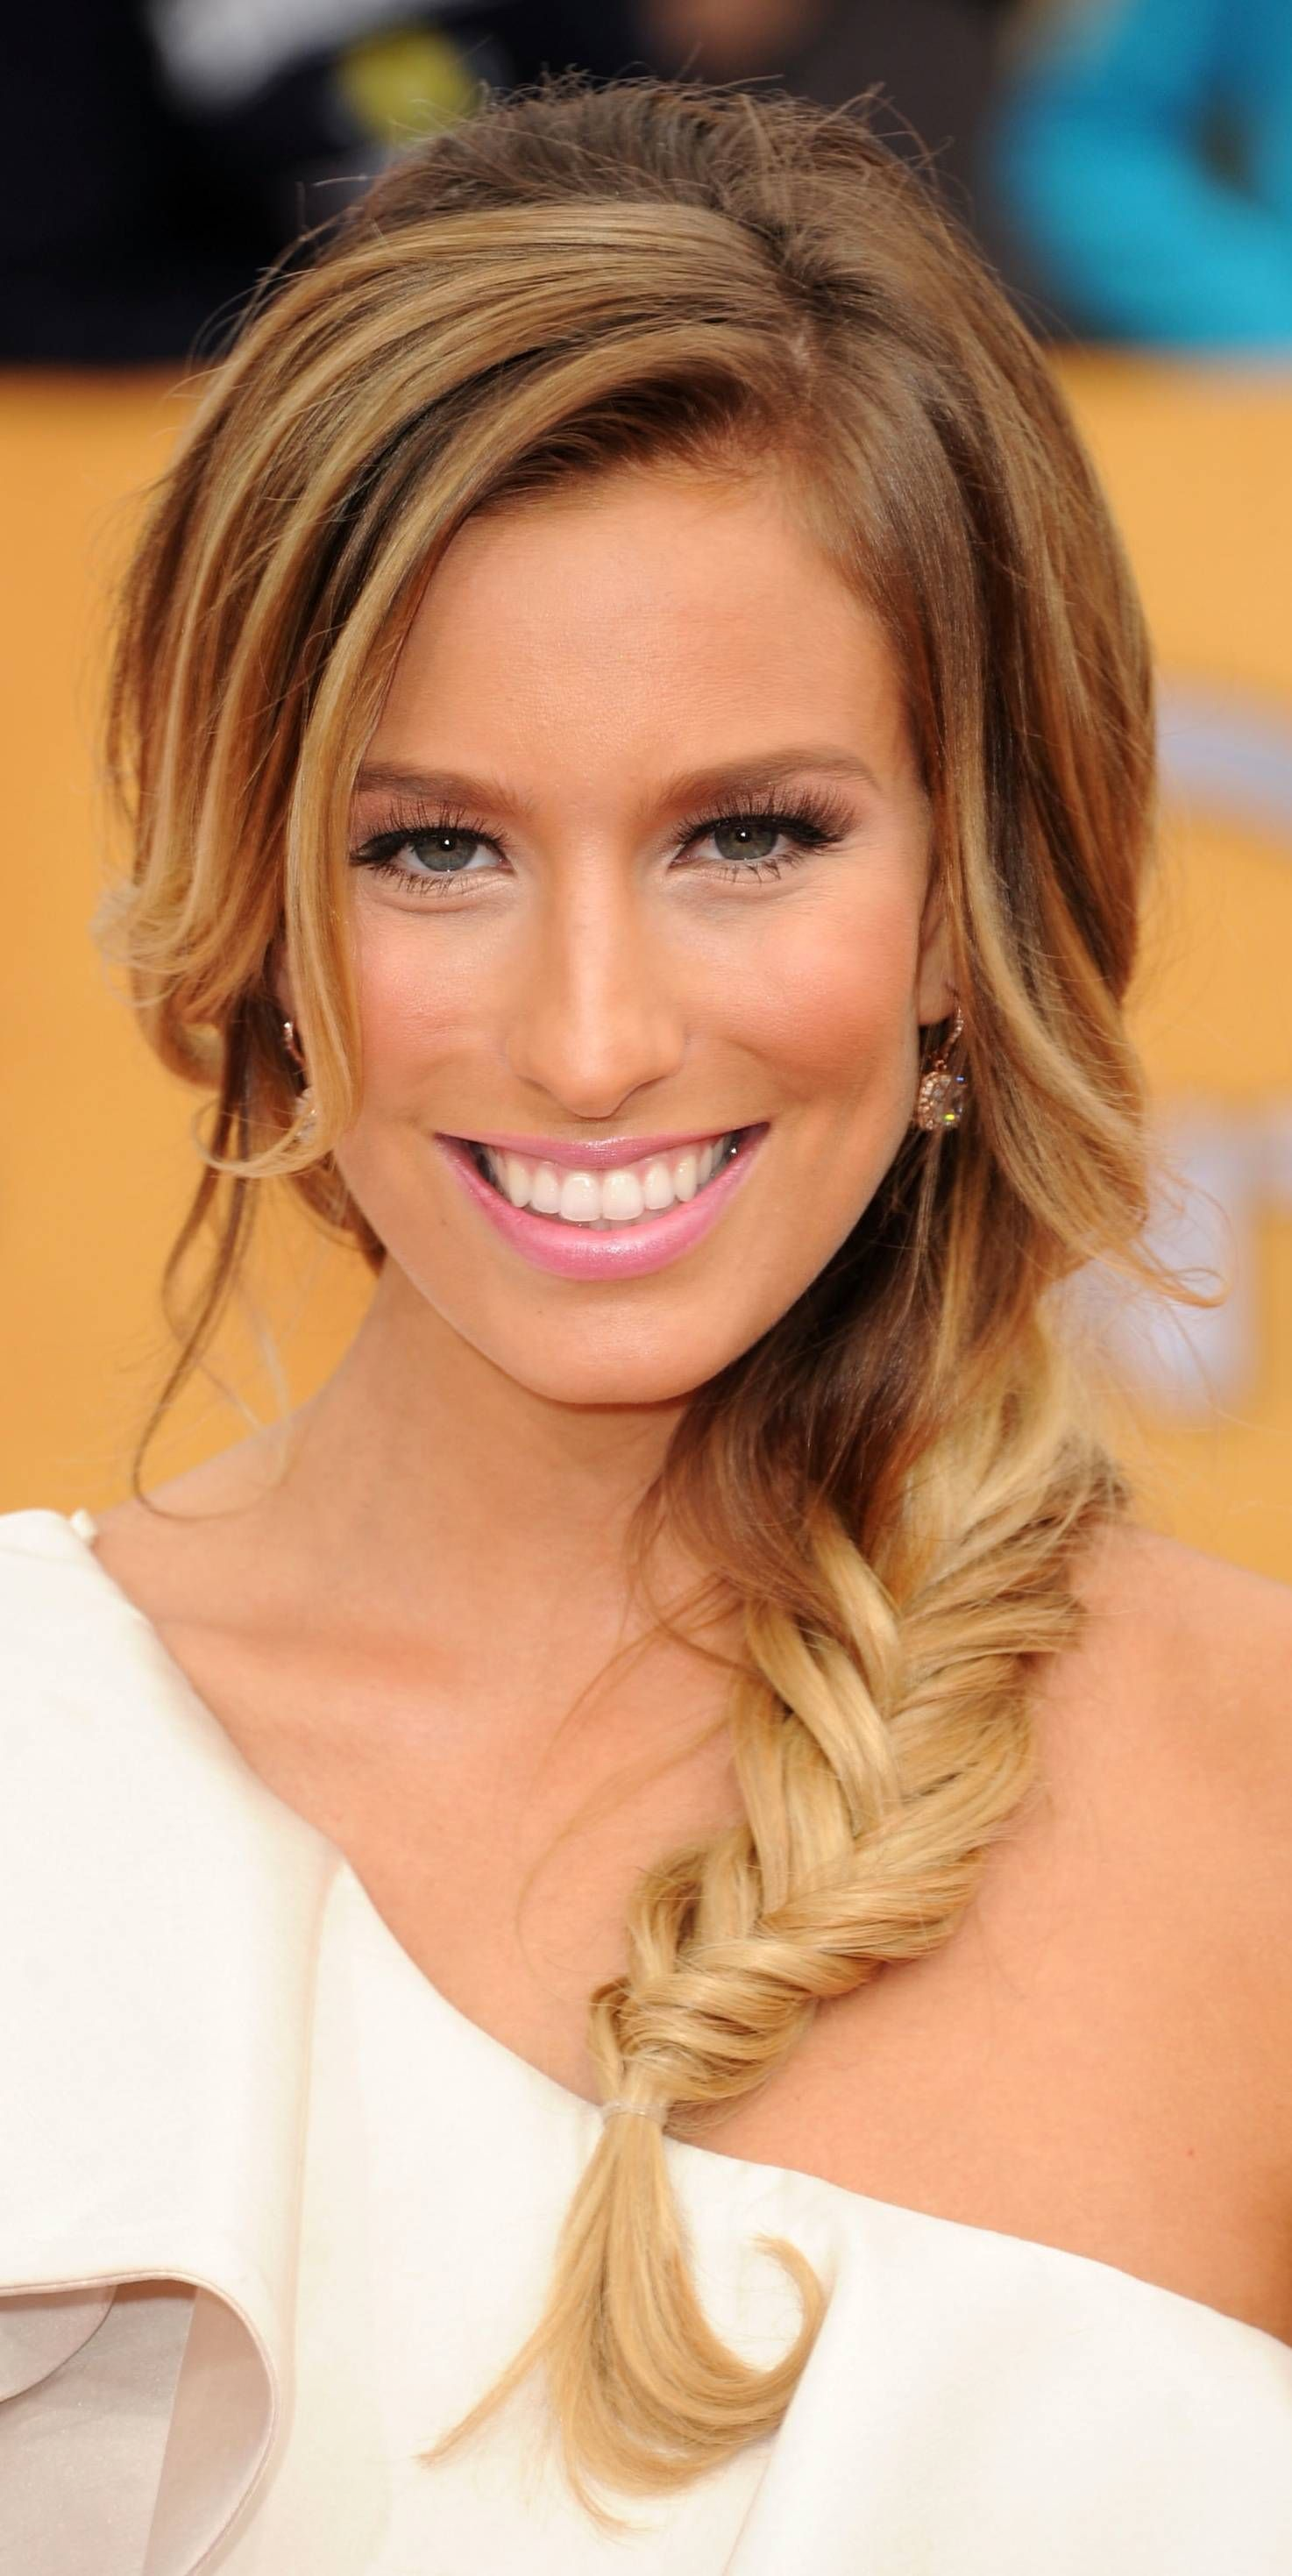 prom hair with loose fish tail braid | prom hair | pinterest